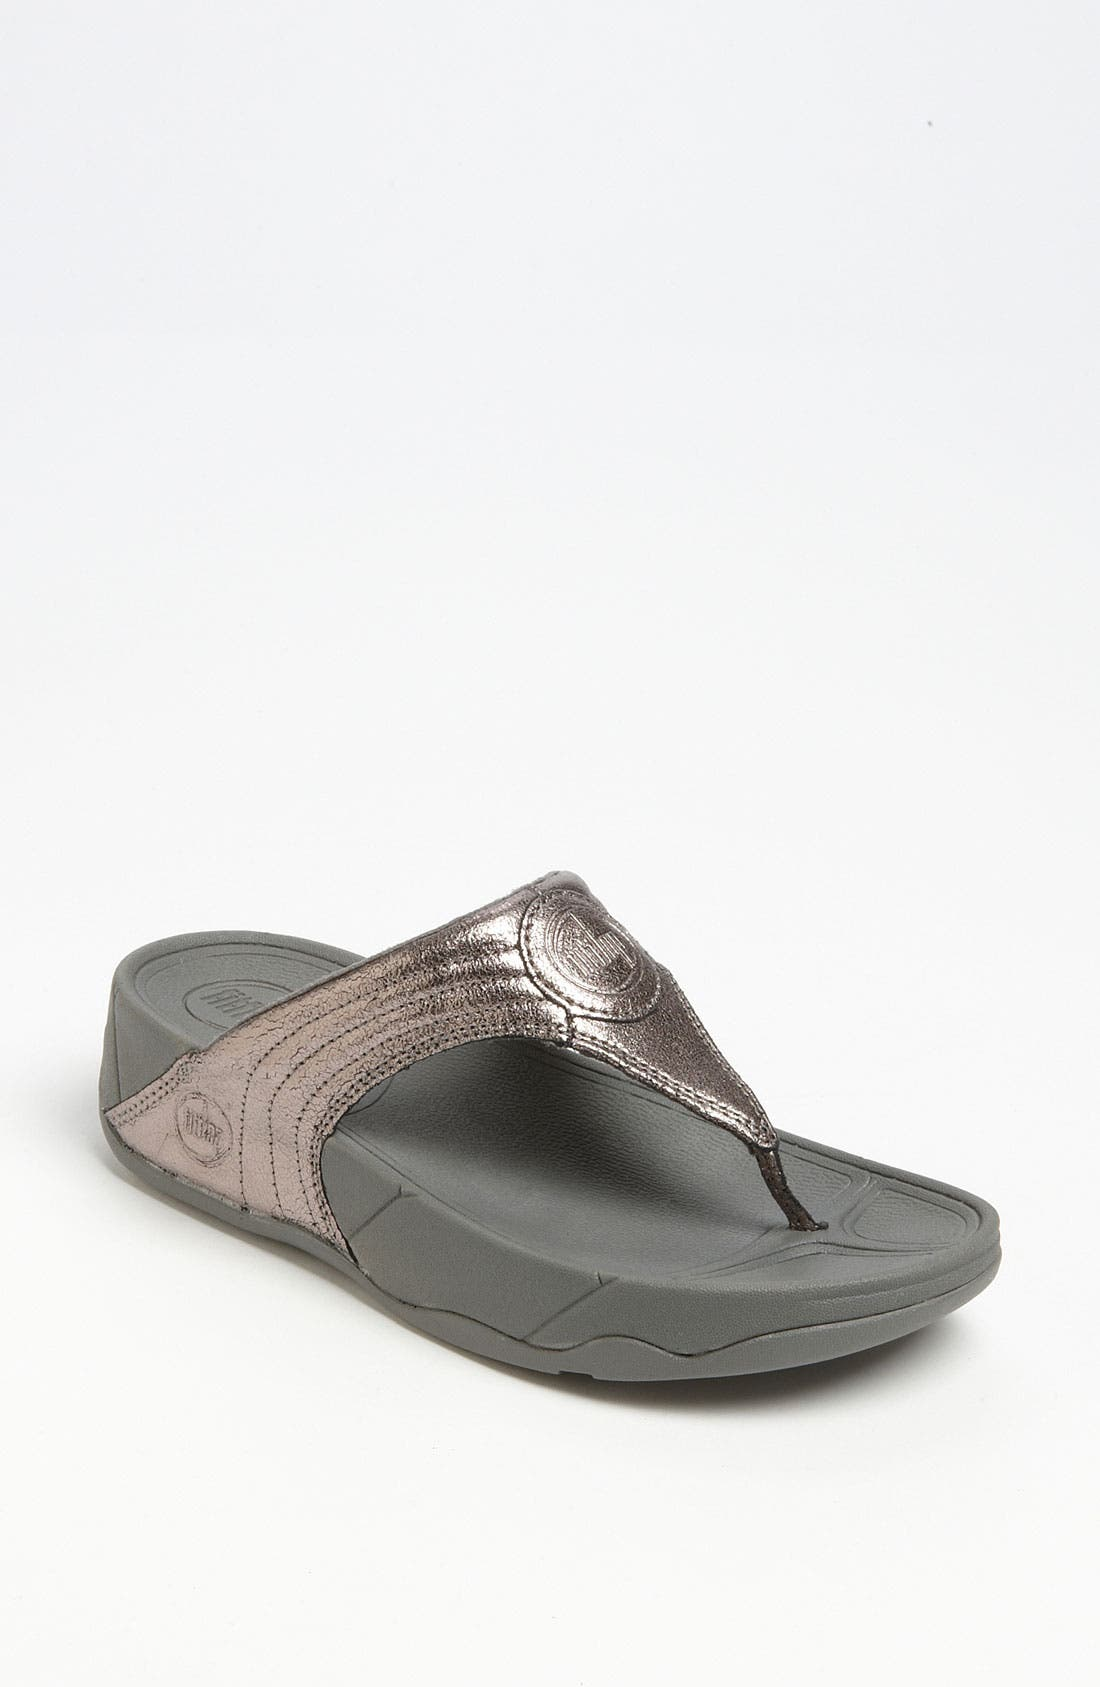 Main Image - FitFlop 'Walkstar 3' Sandal